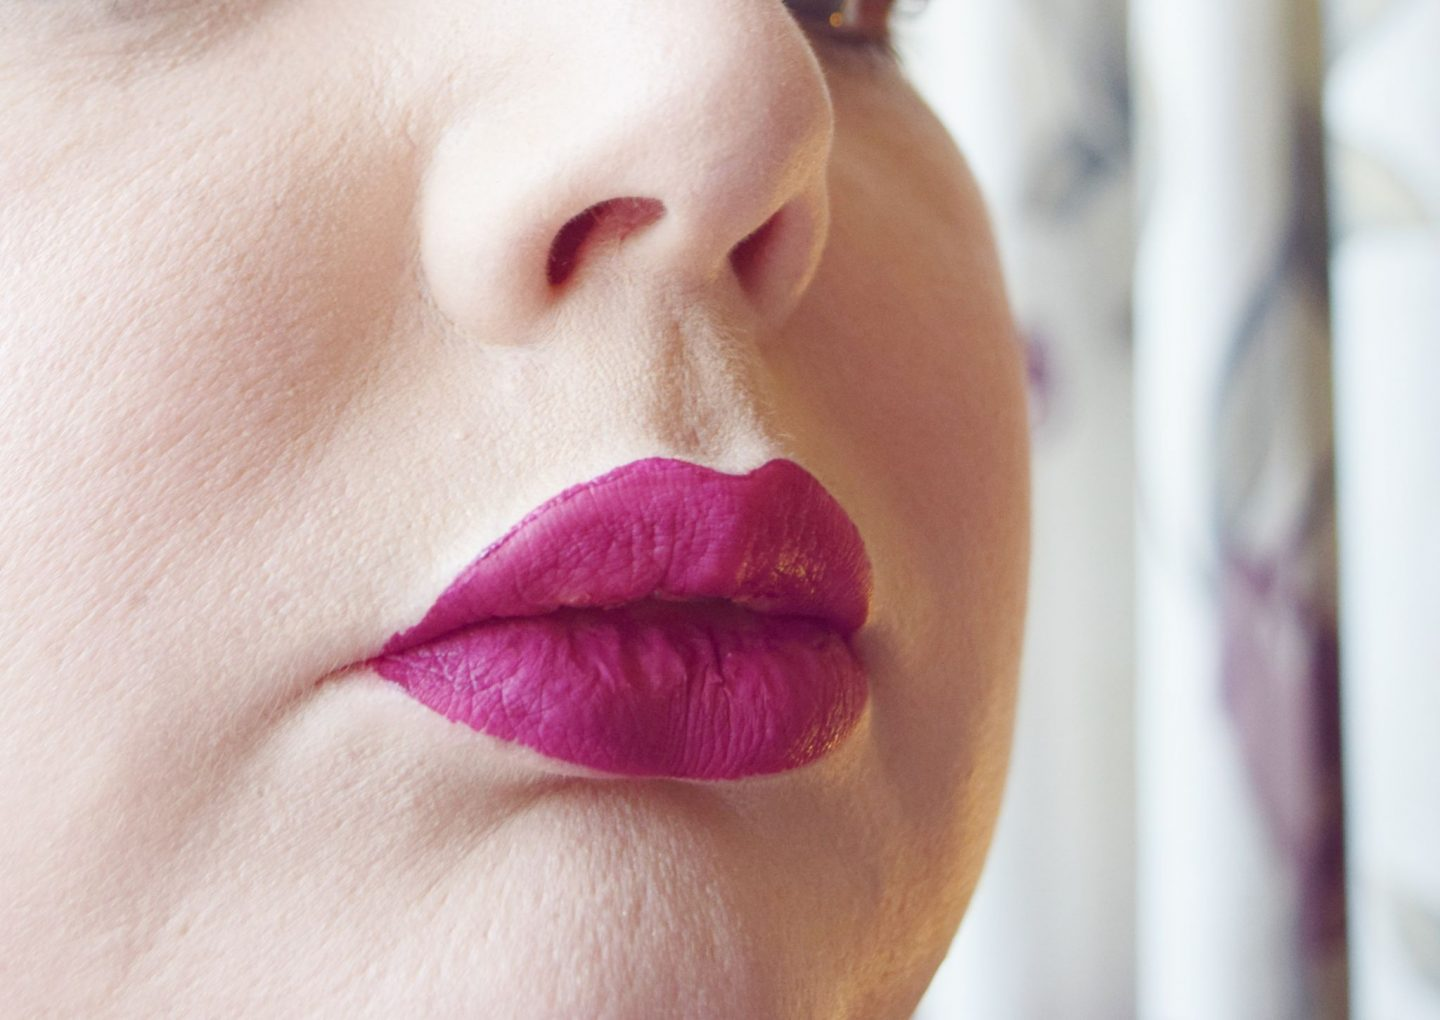 Estee Lauder Pure Color Envy Liquid LipColor in Orchid Flare lip swatch